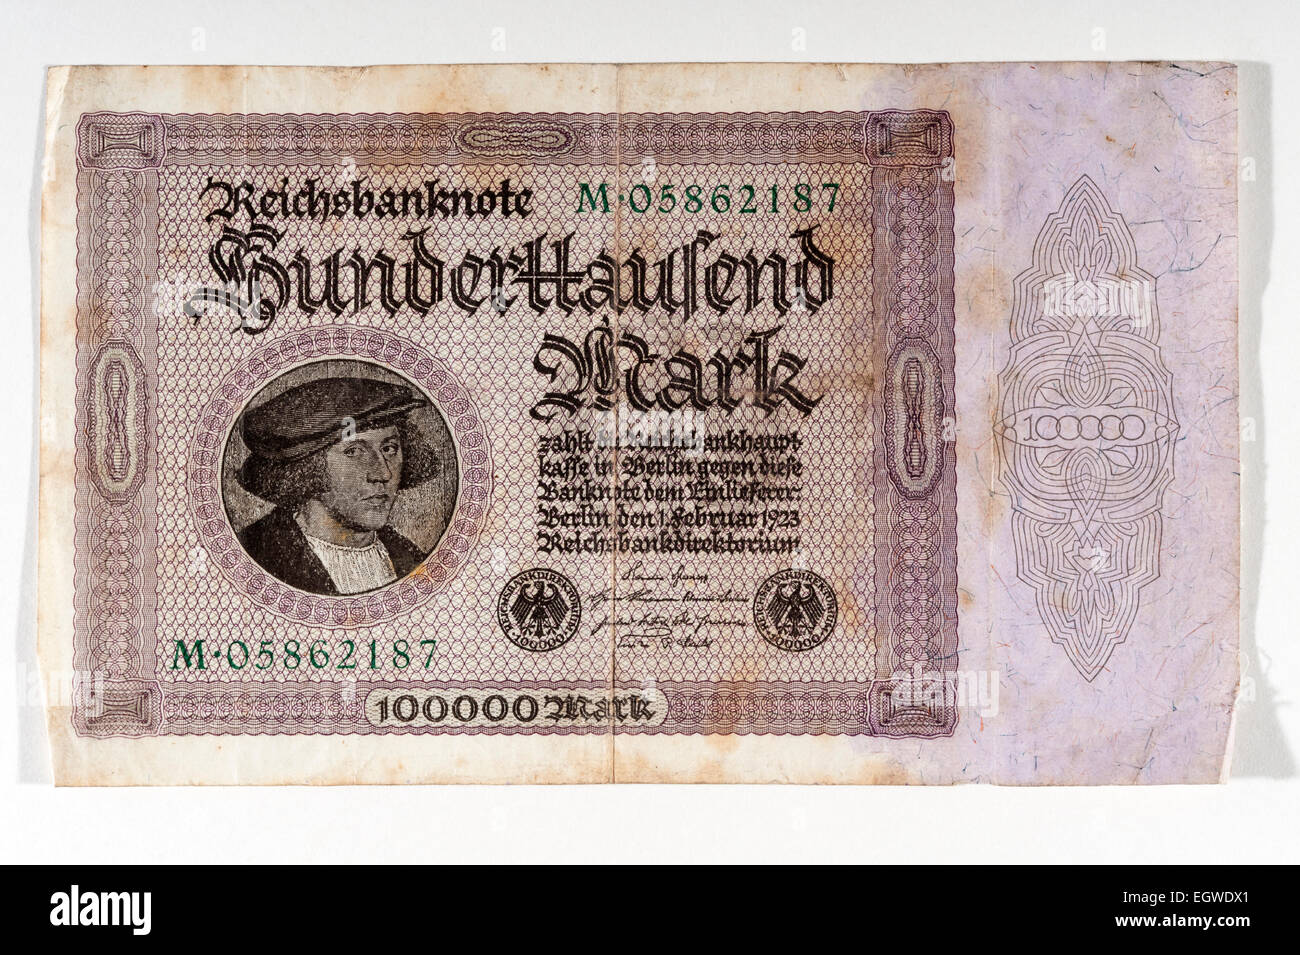 germany-a-one-hundred-thousand-mark-note